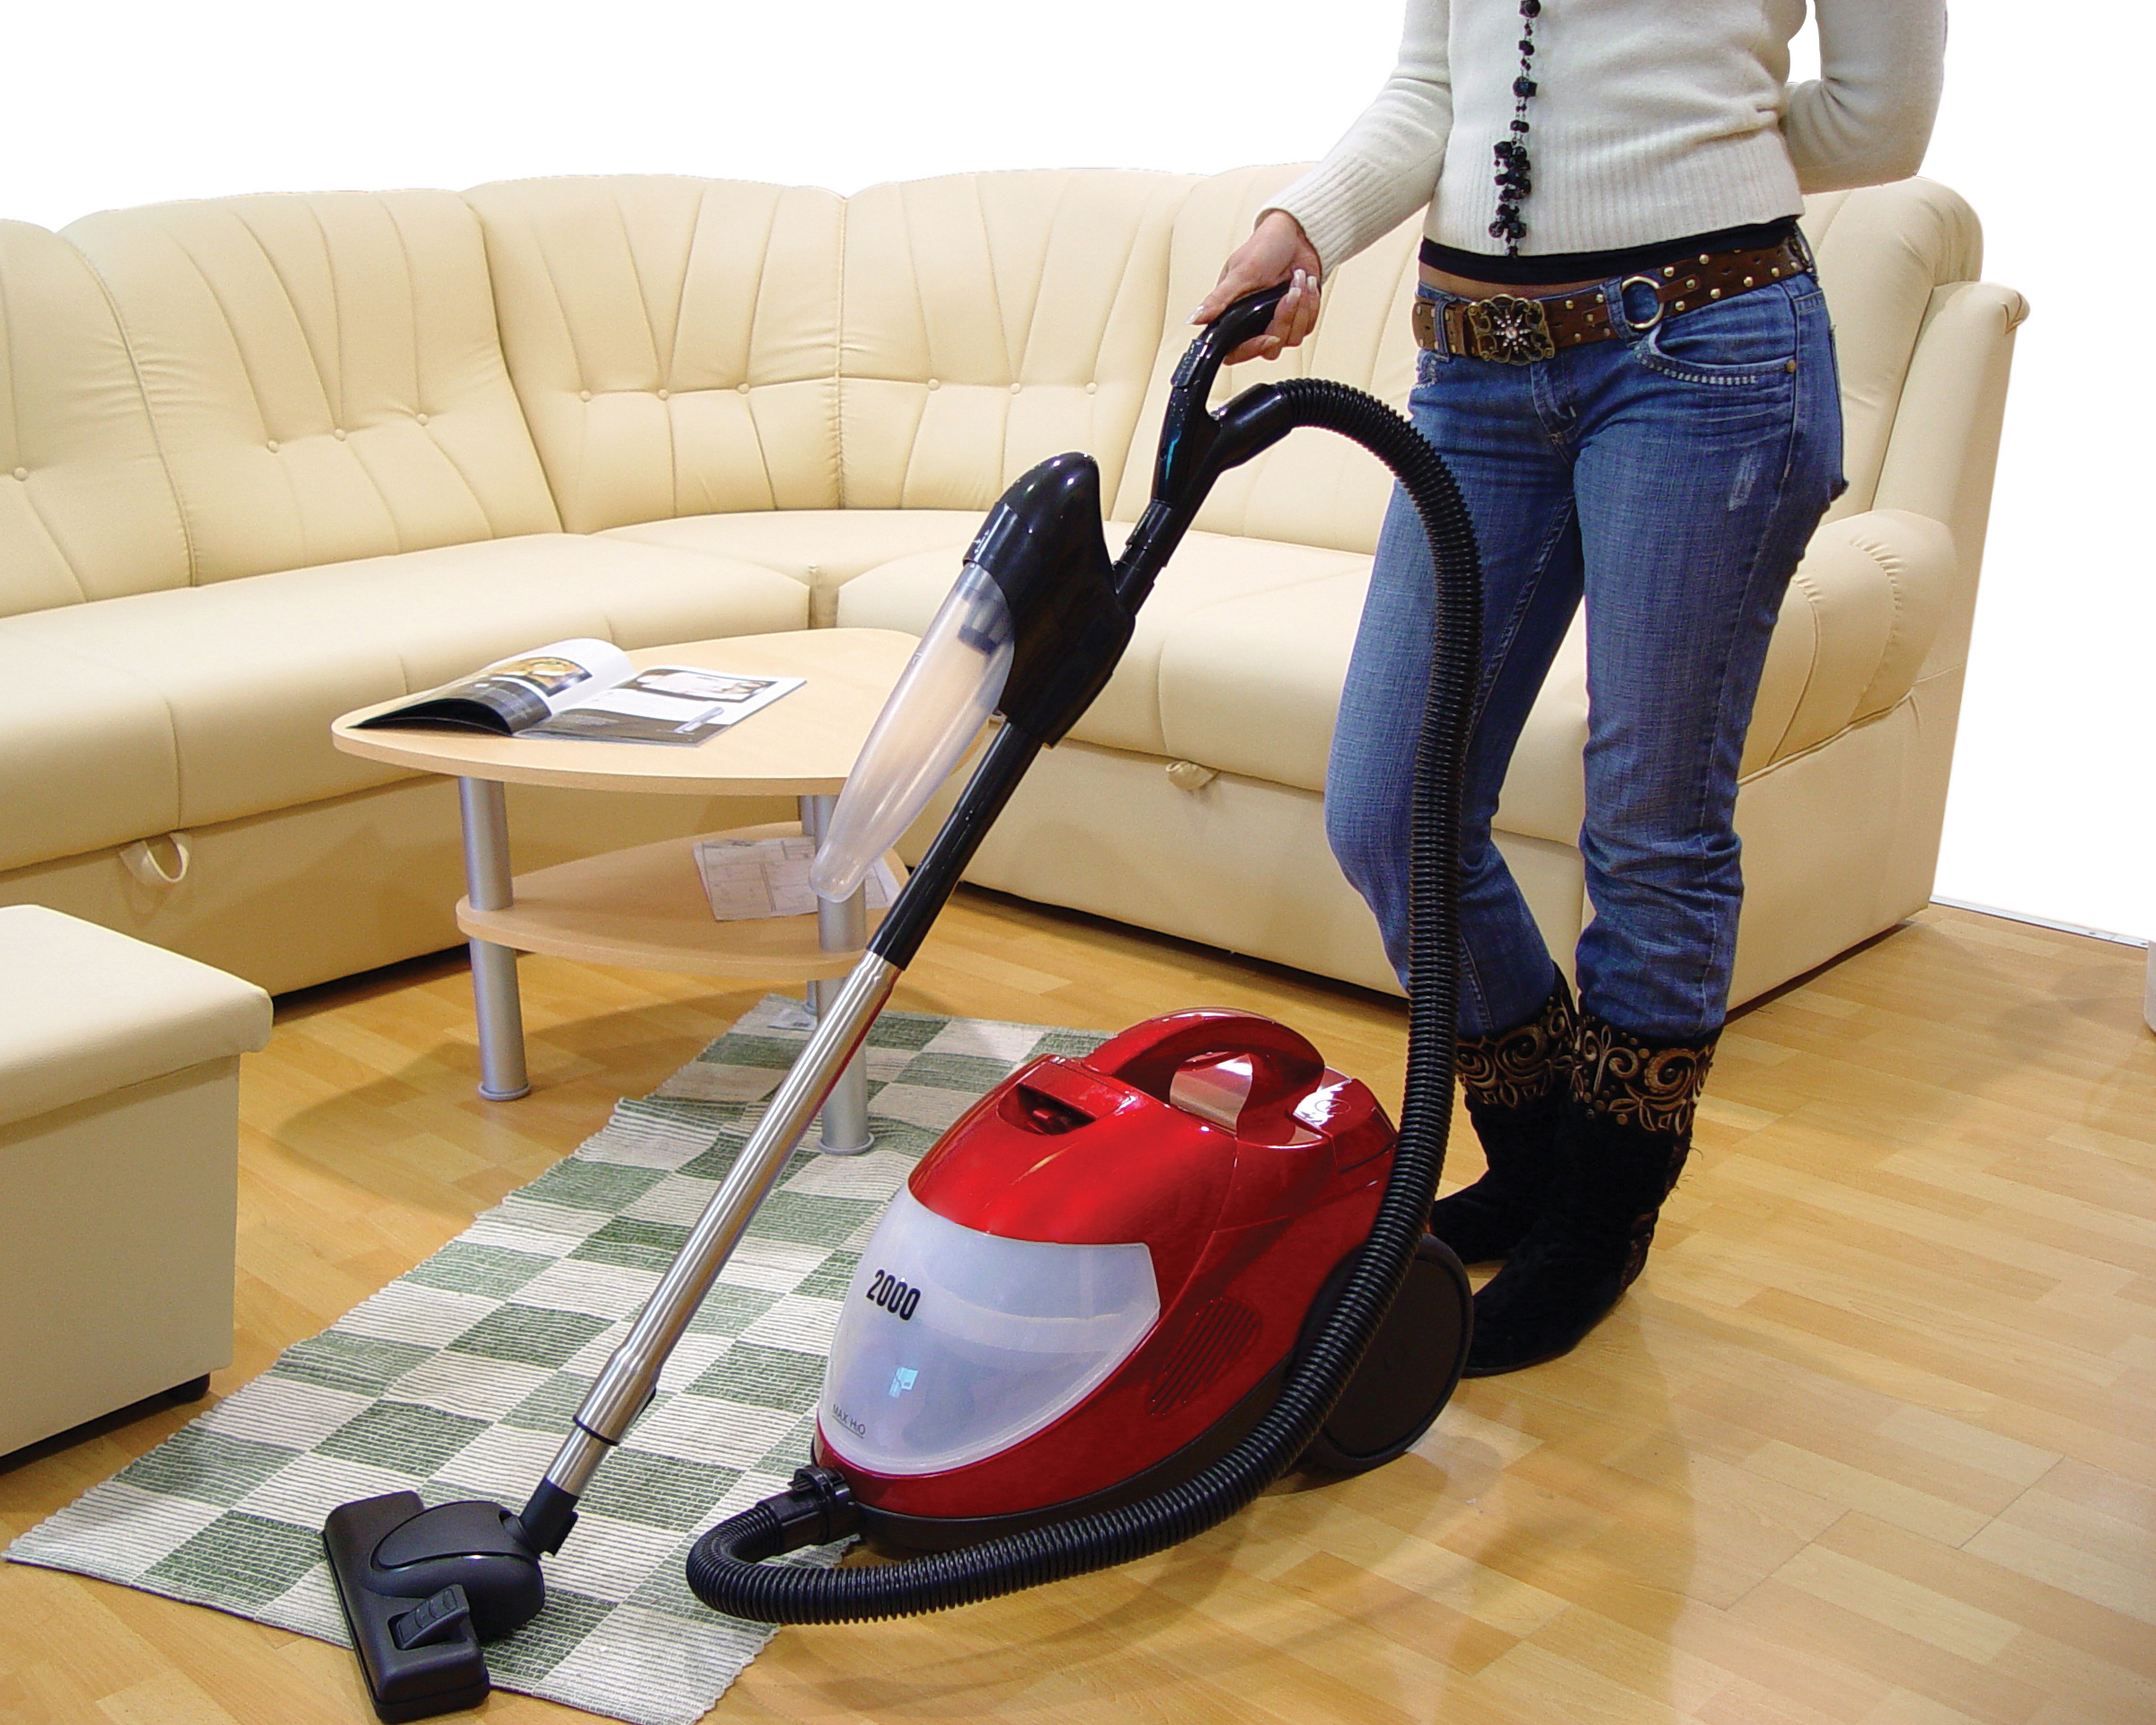 Top Rated Vacuums For Under Top Vacuums The Best Vacuums - Highest rated vacuum for hardwood floors